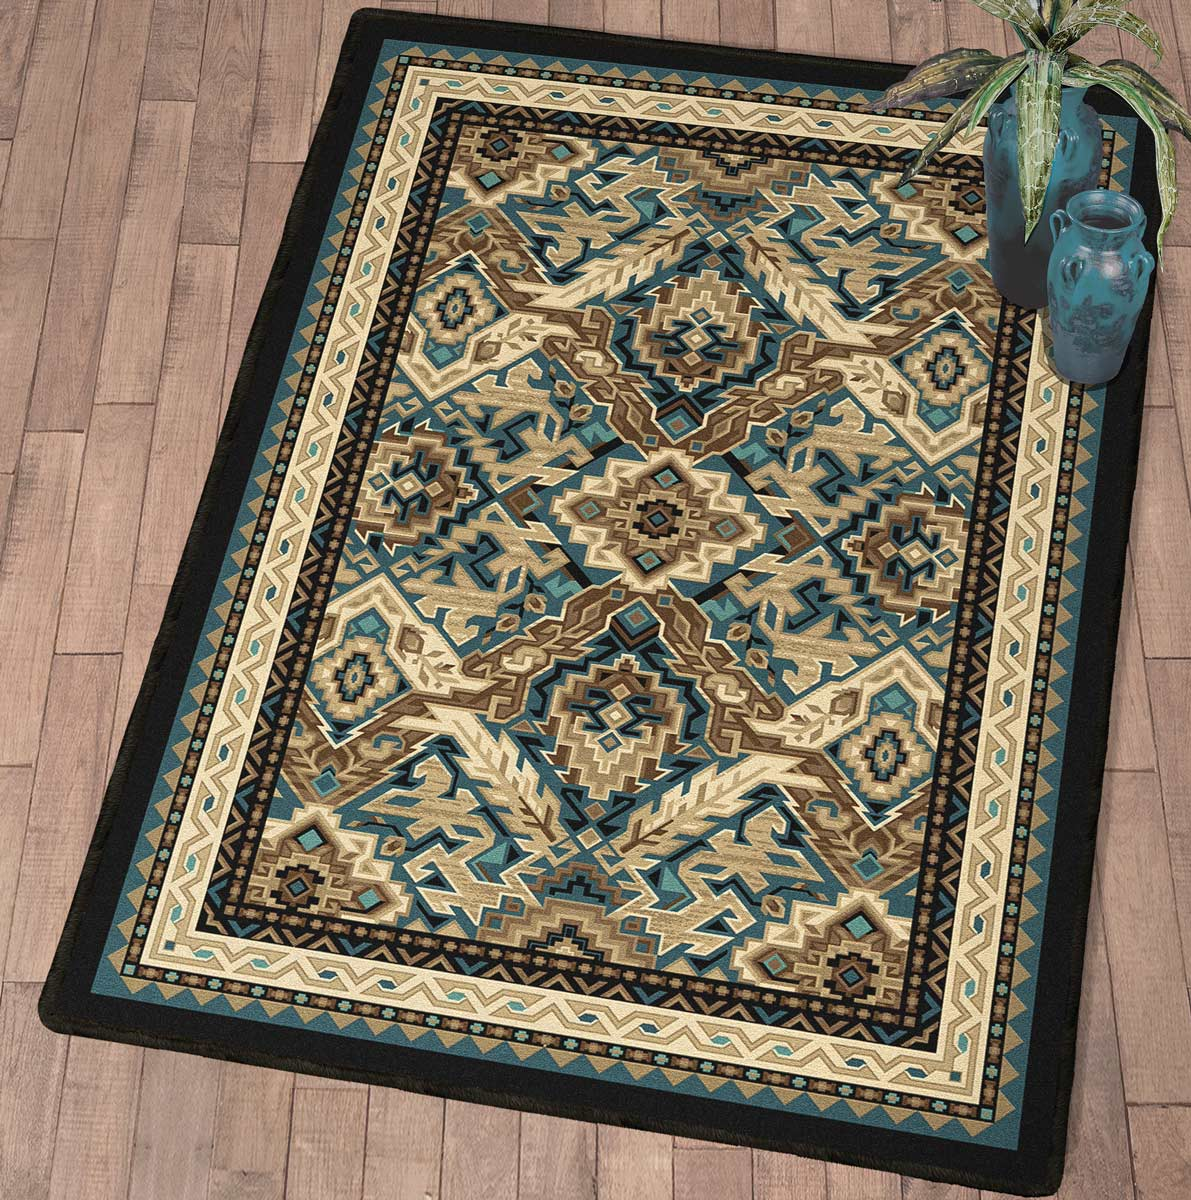 Horizon Mountain Rug - 5 x 8